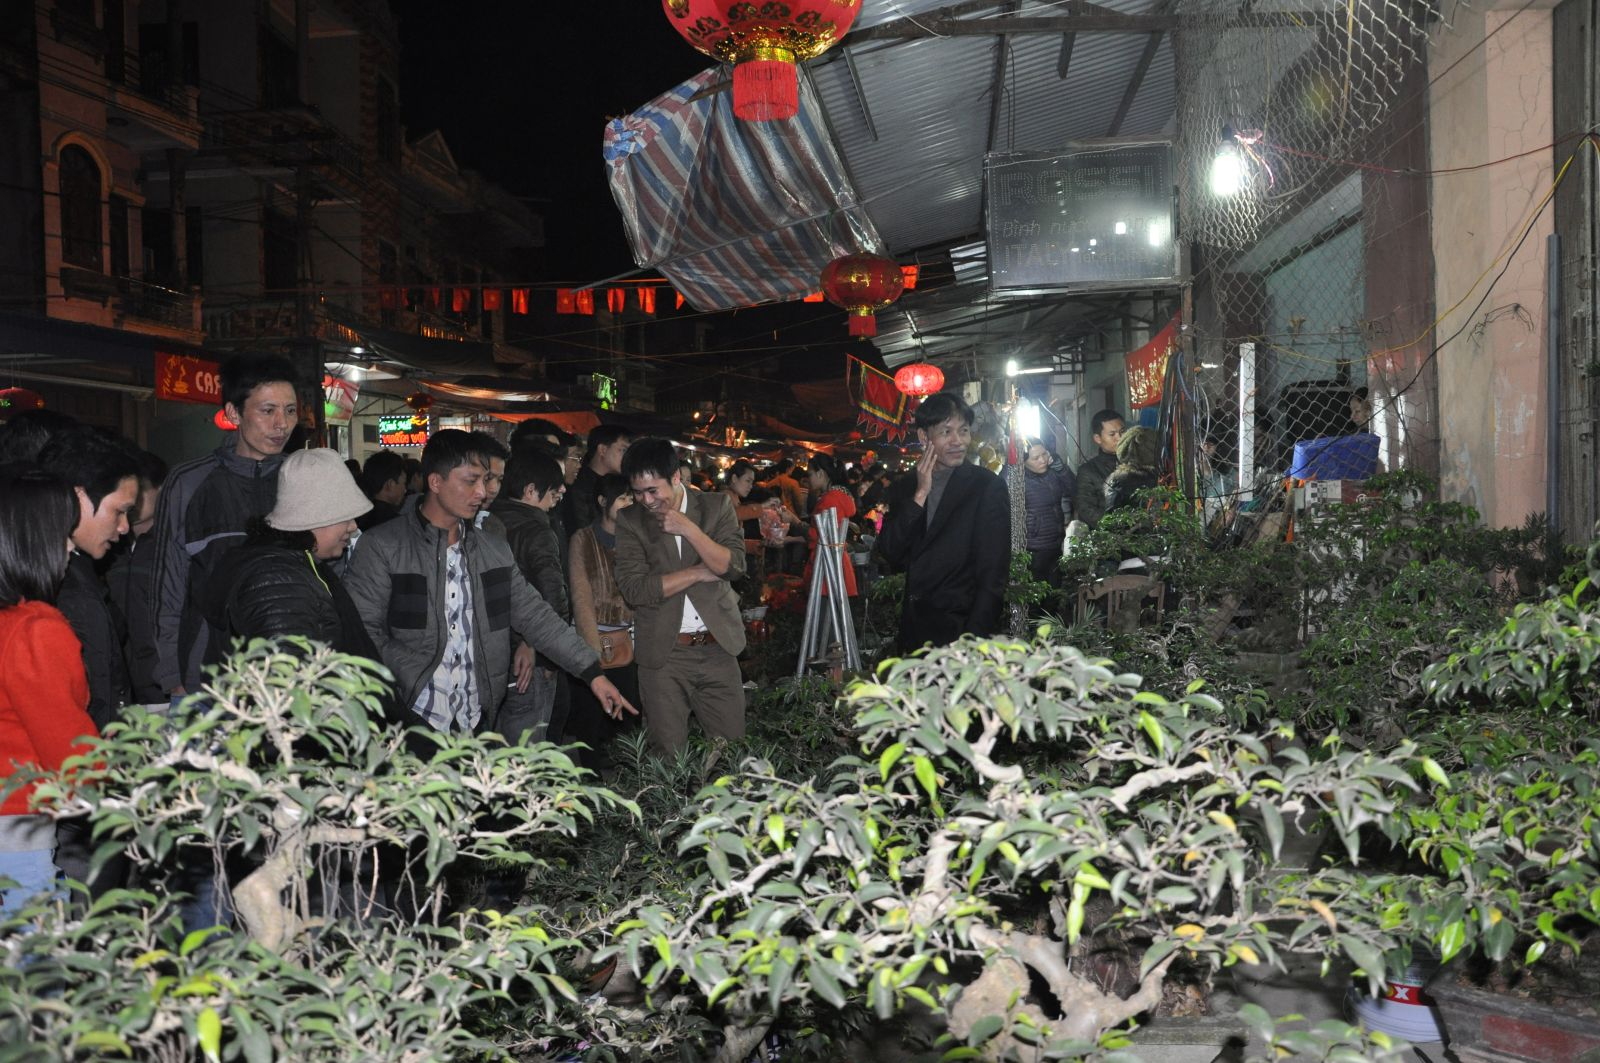 Chợ Viềng: Typical Culture At Vieng Market - Buy Good Luck